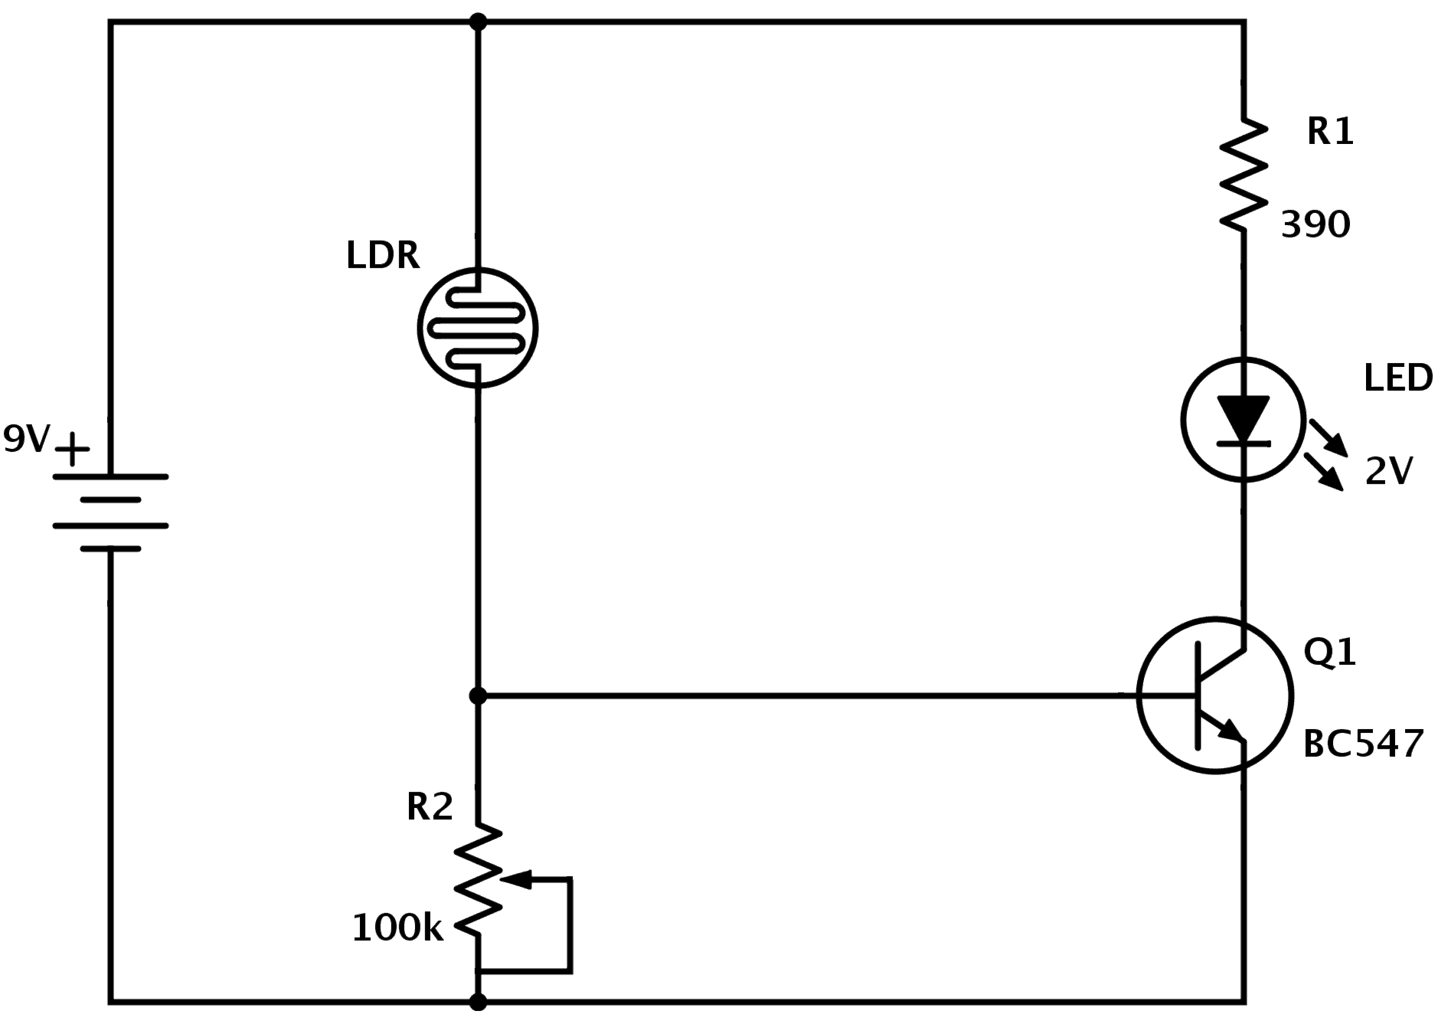 circuit diagram how to read and understand any schematic rh build electronic circuits com electronic circuit diagrams computer program basic electronic circuit diagrams